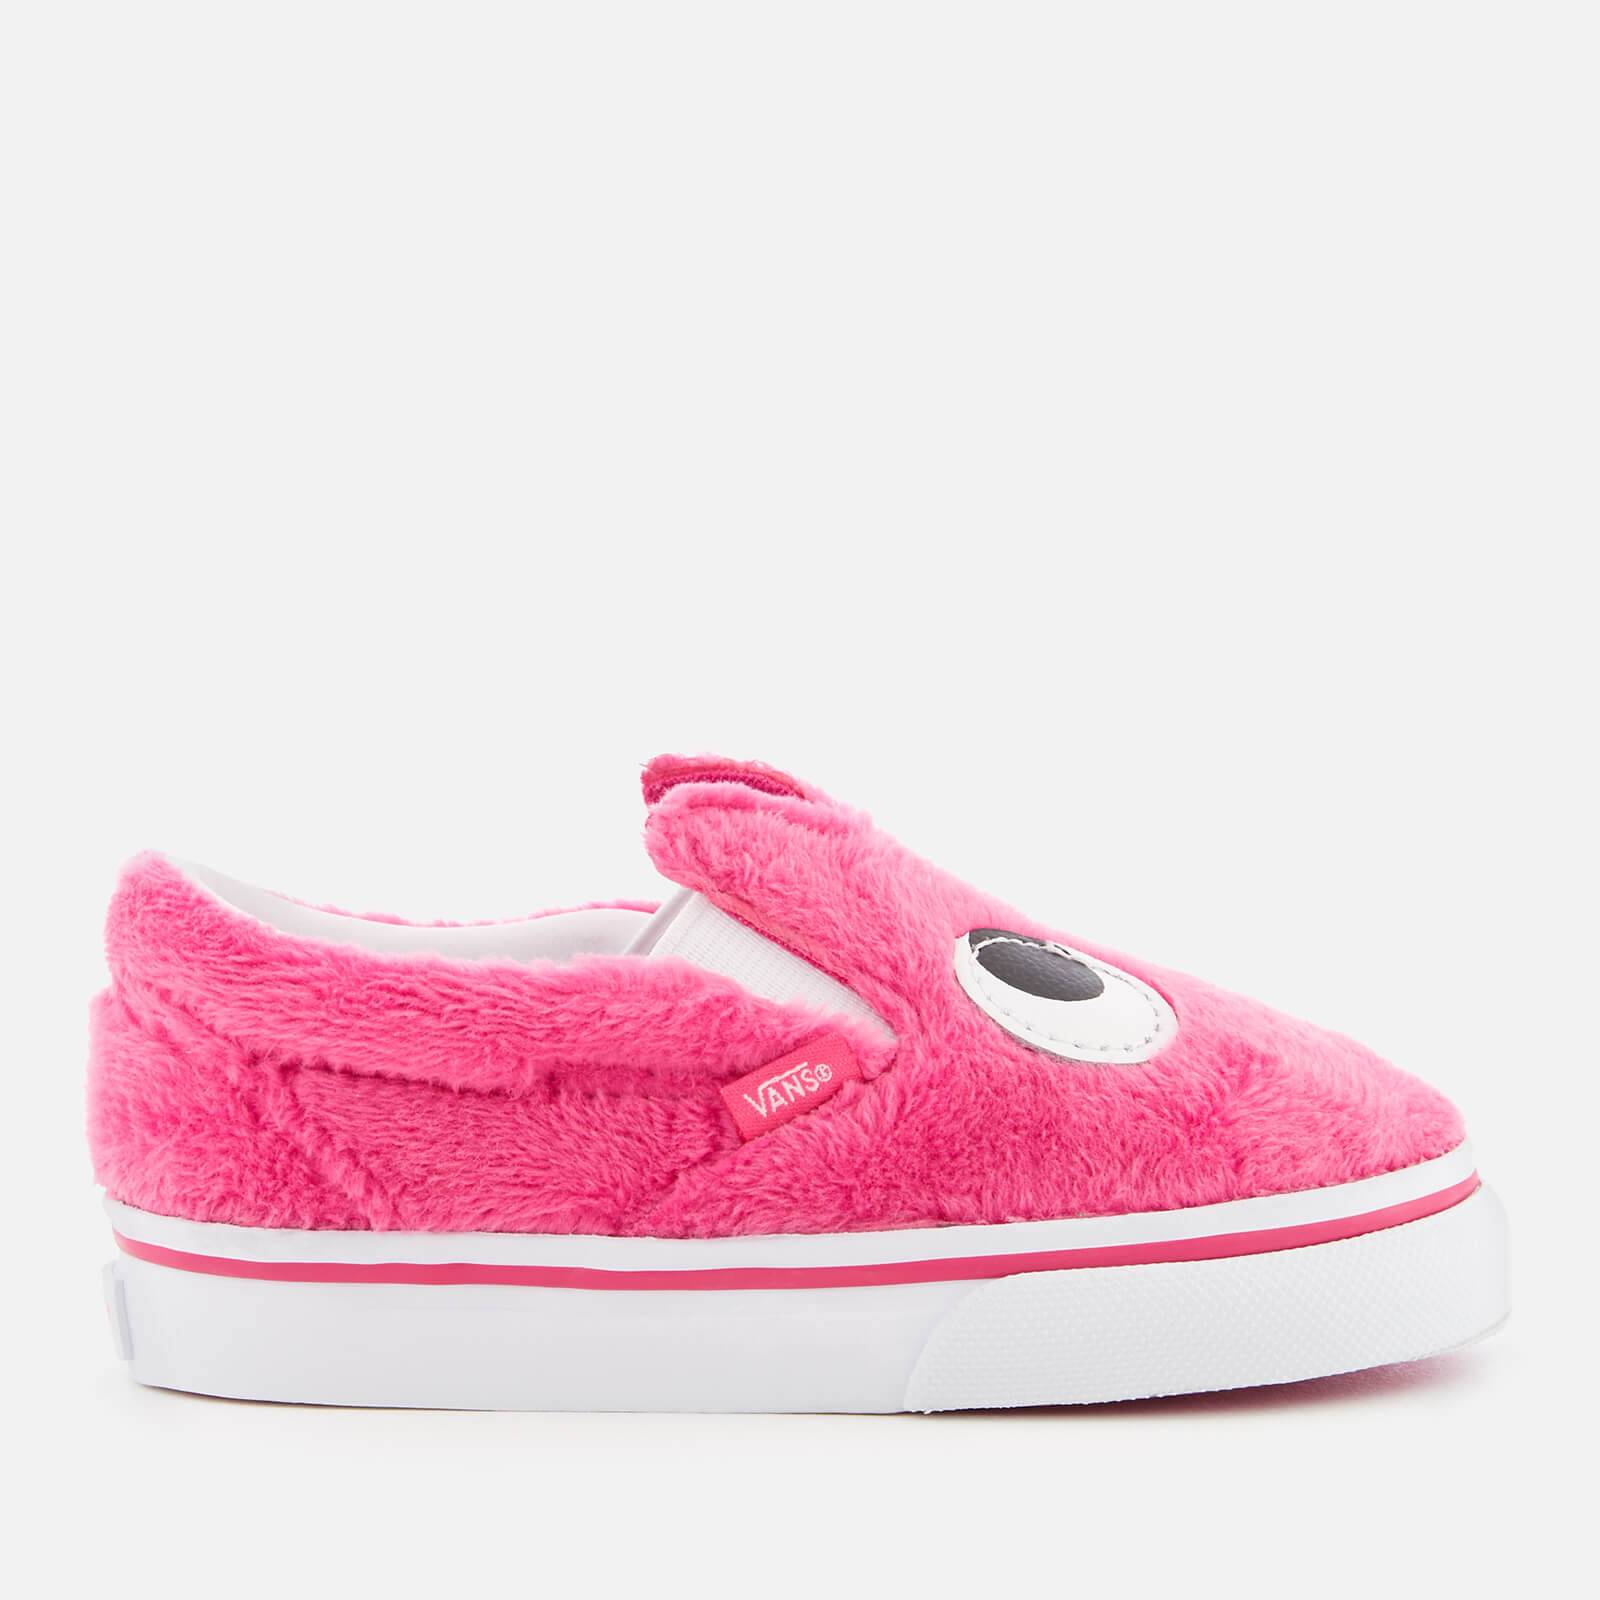 Vans Toddlers' Slip-On Friend Party Fur Trainers - Magenta/True White - UK 3 Toddler - Pink